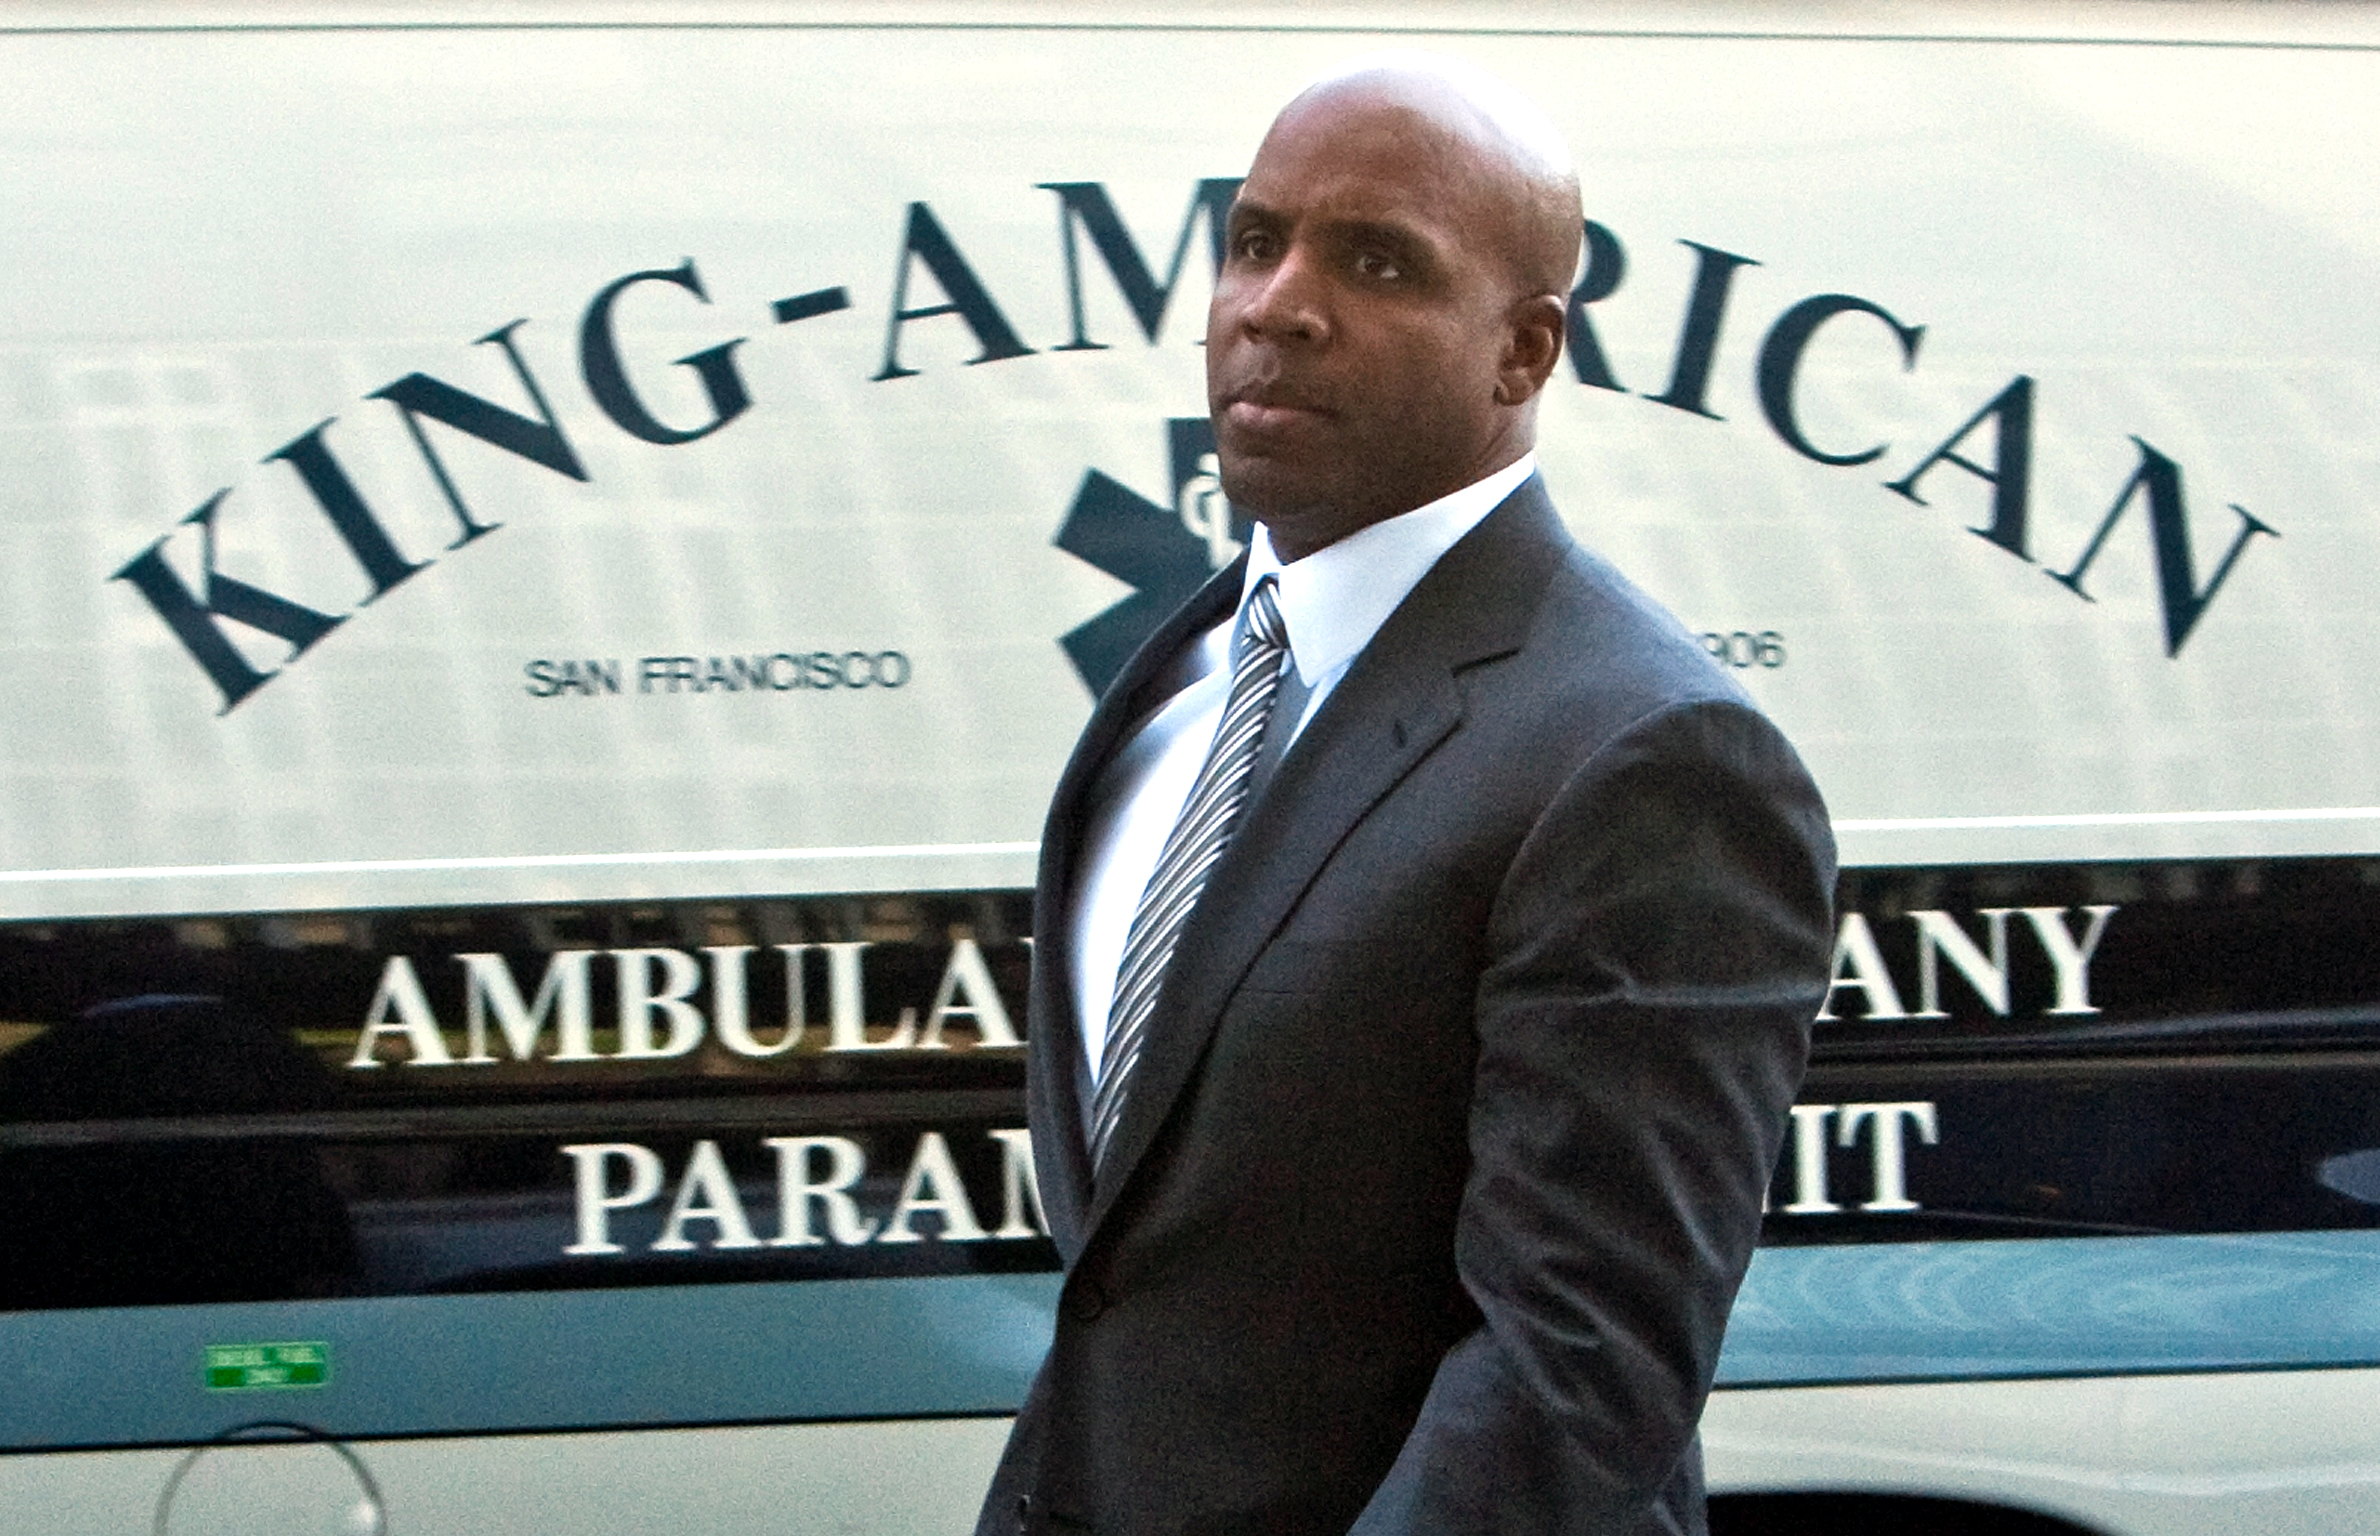 SAN FRANCISCO, CA -APRIL 8:  Former major league baseball player Barry Bonds (L) arrives at the Phillip Burton Federal Building and United States Courthouse April 8, 2011 in San Francisco, California. The jury is deliberating the case in which Barry Bonds